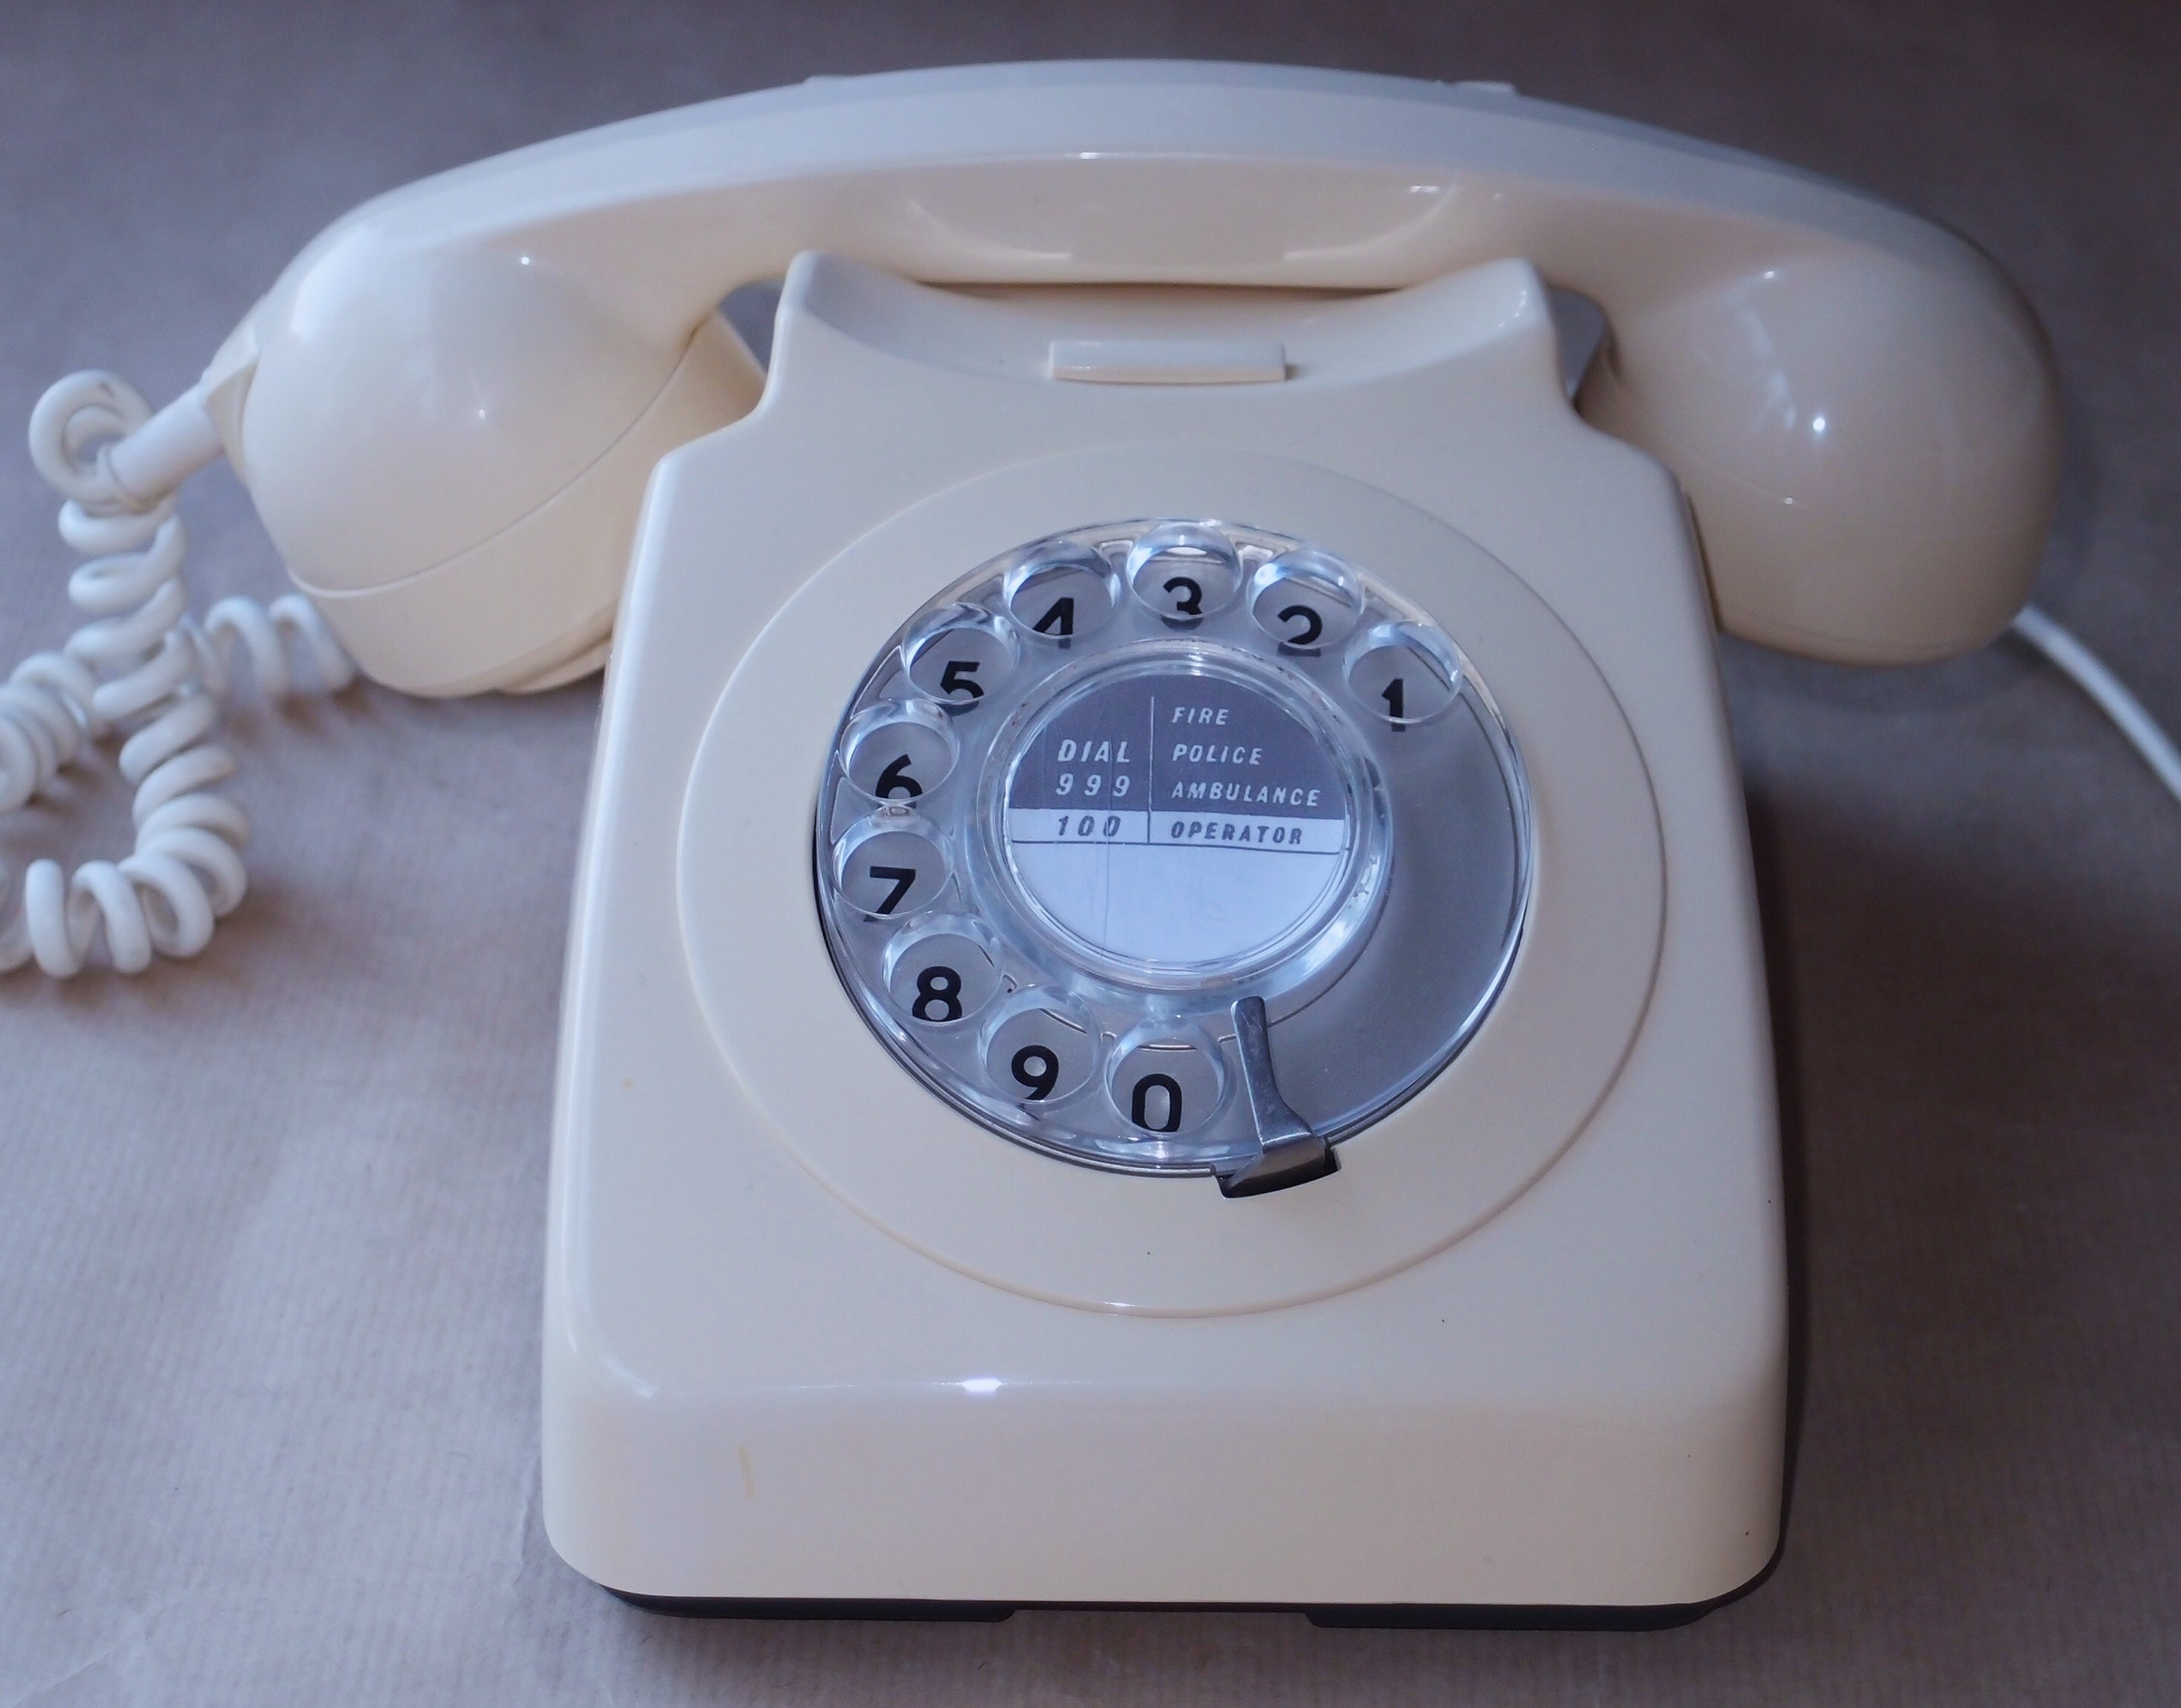 File:746 telephone in ivory.JPG